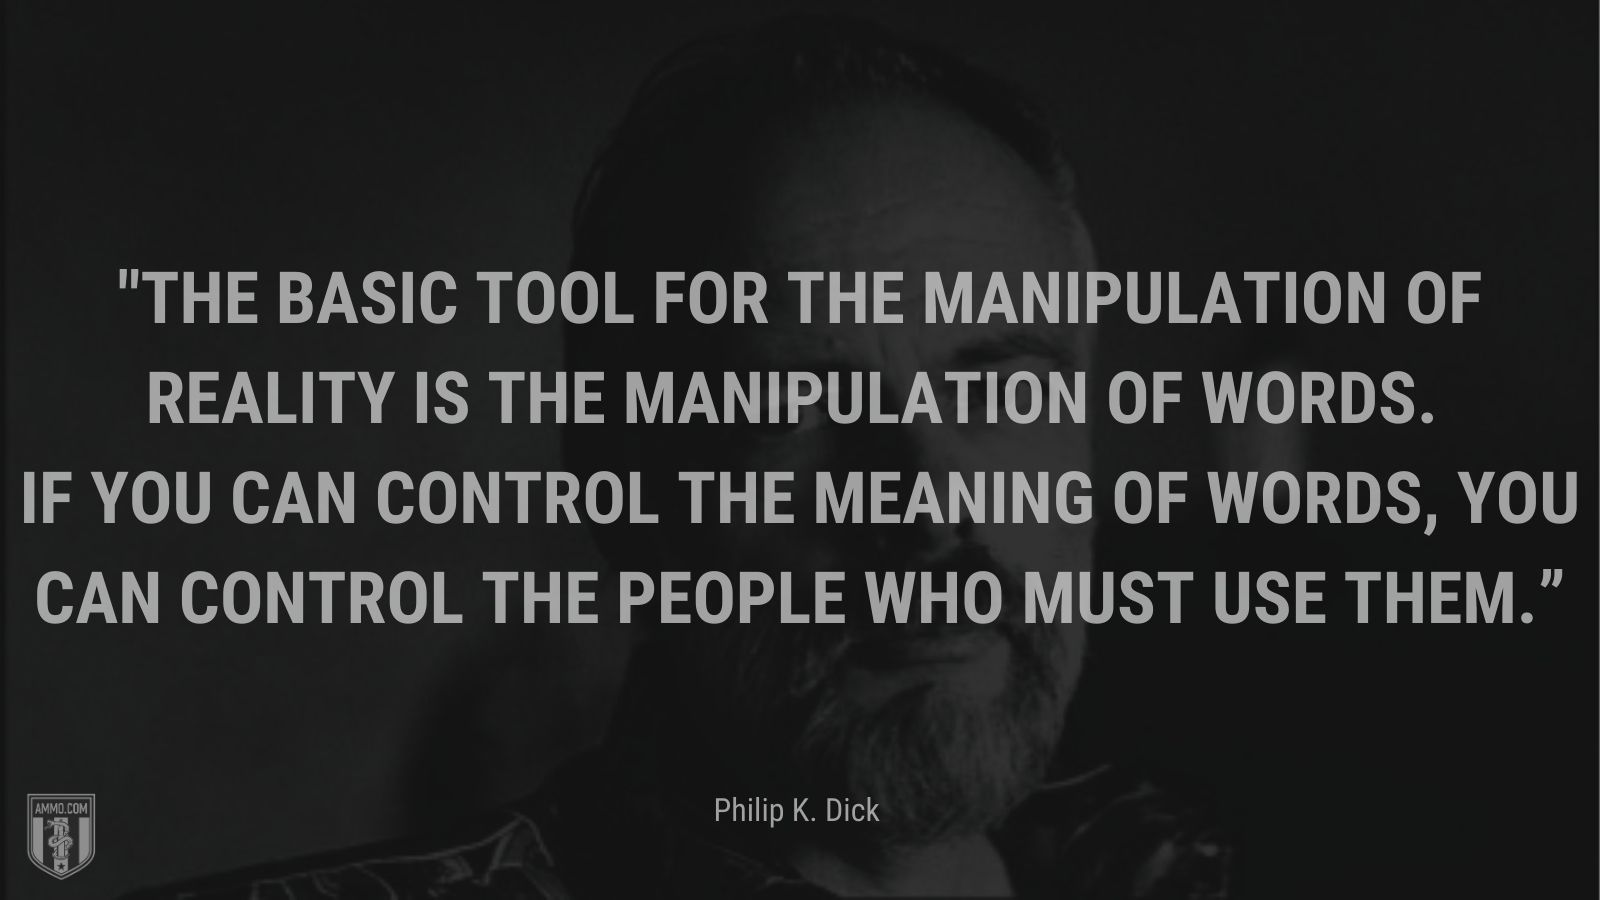 """""""The basic tool for the manipulation of reality is the manipulation of words. If you can control the meaning of words, you can control the people who must use them."""" - Philip K. Dick"""